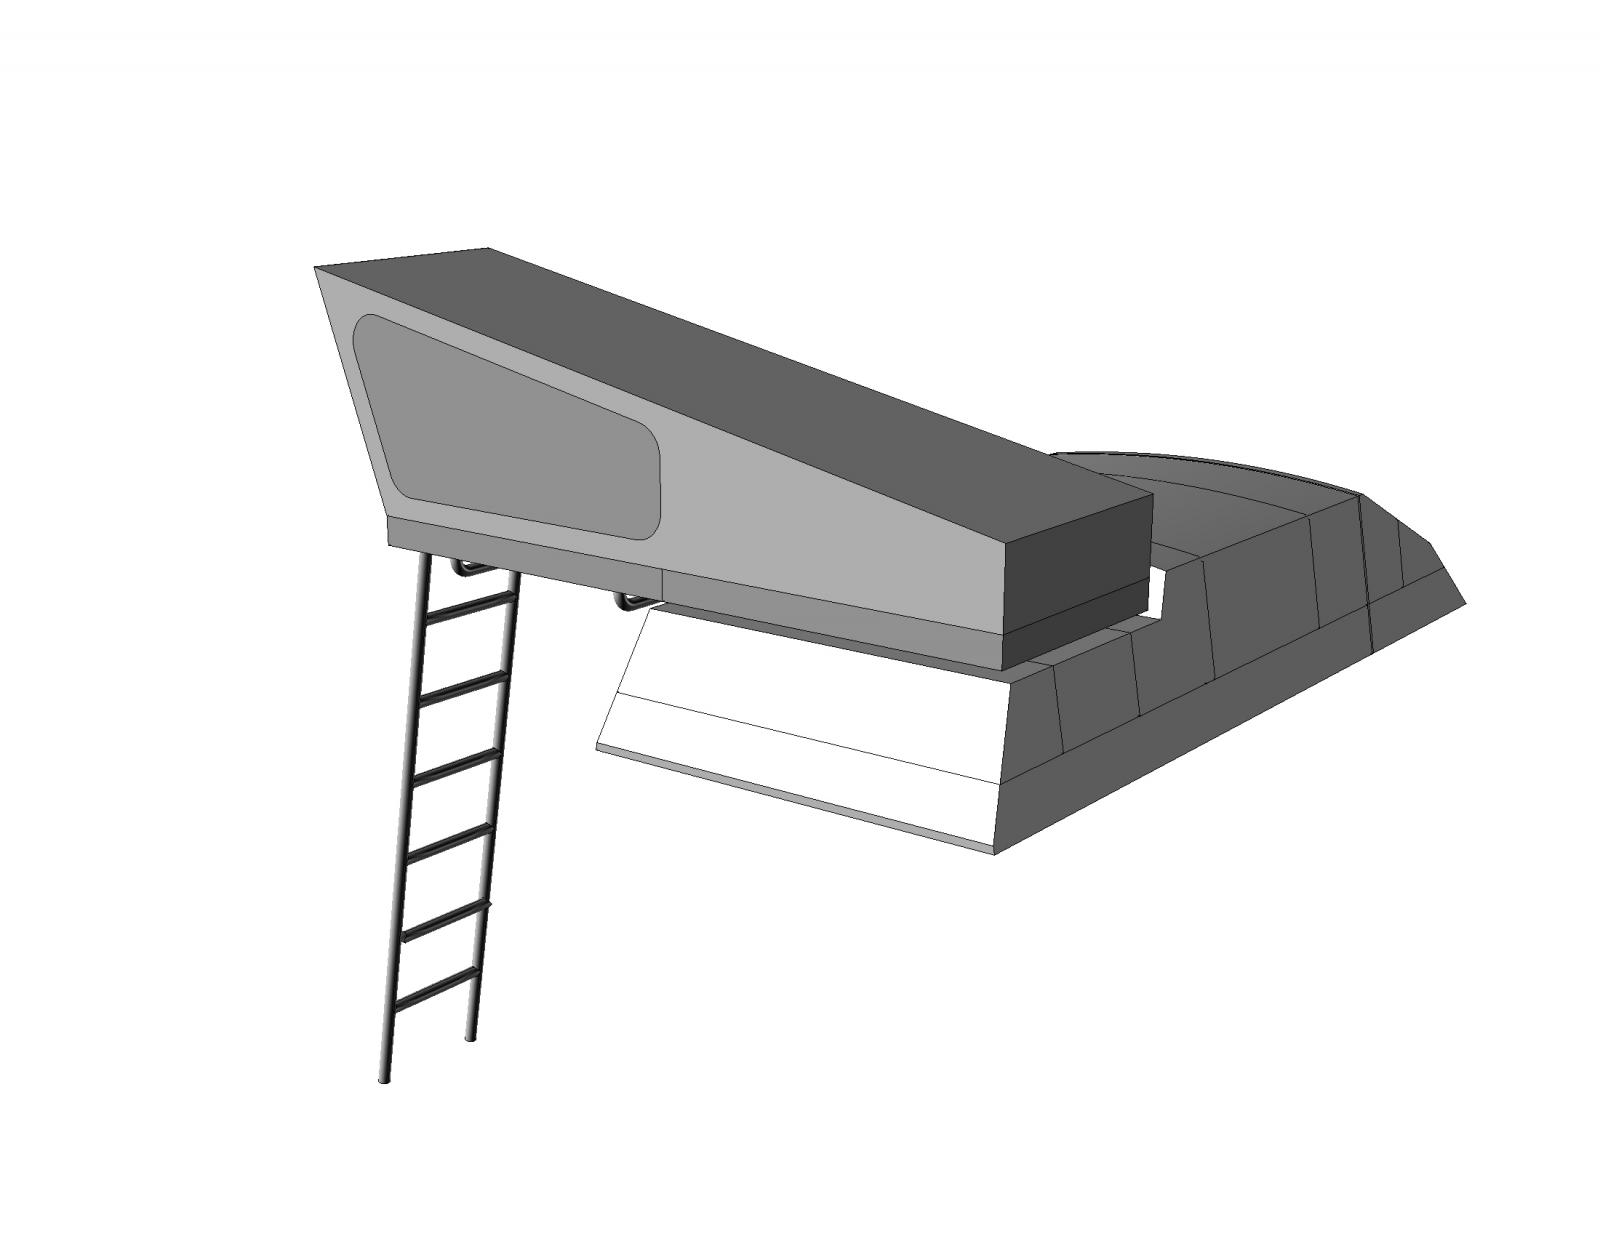 clam roof tent